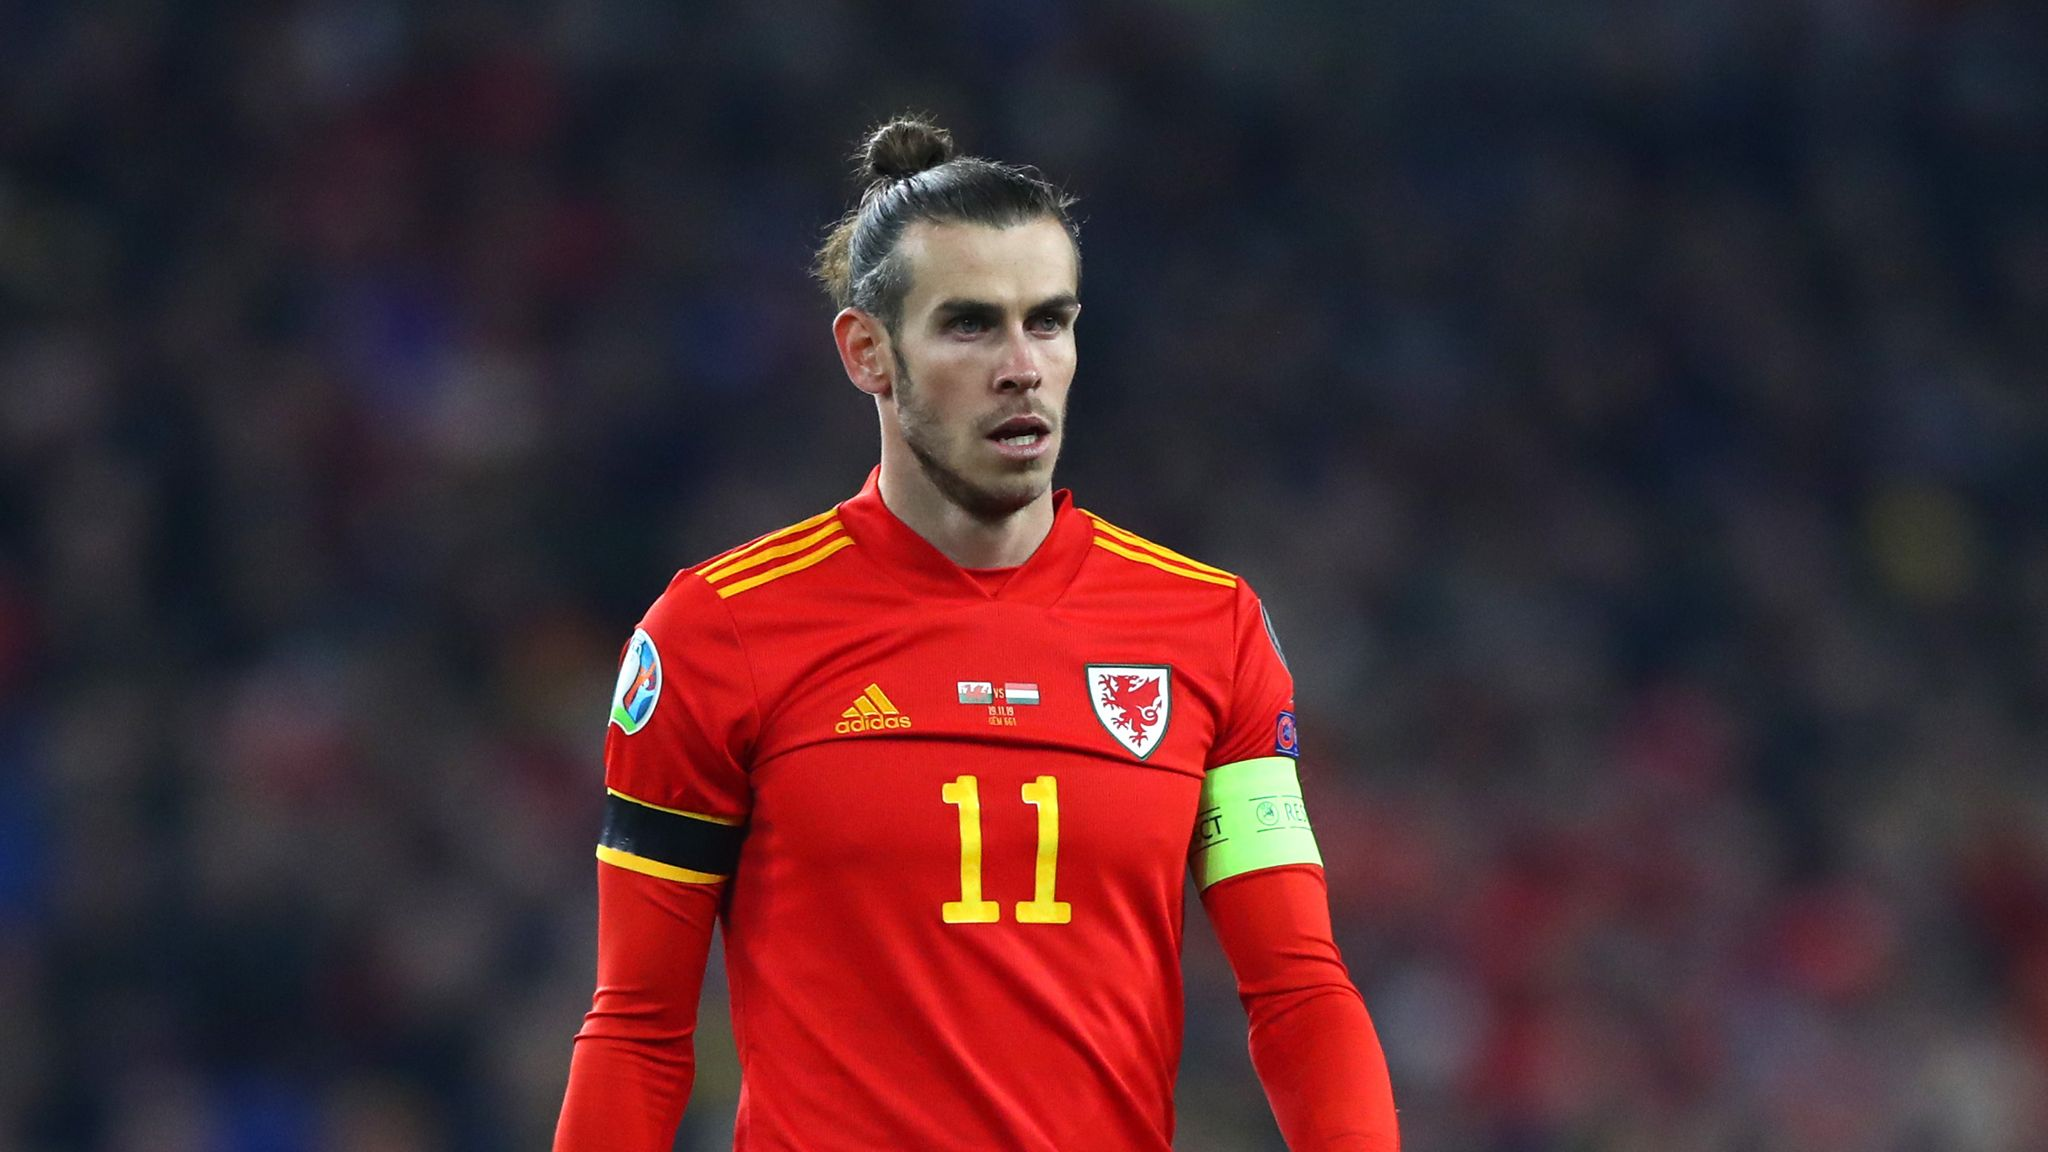 Bale speaks on Wales future after Euro exit.